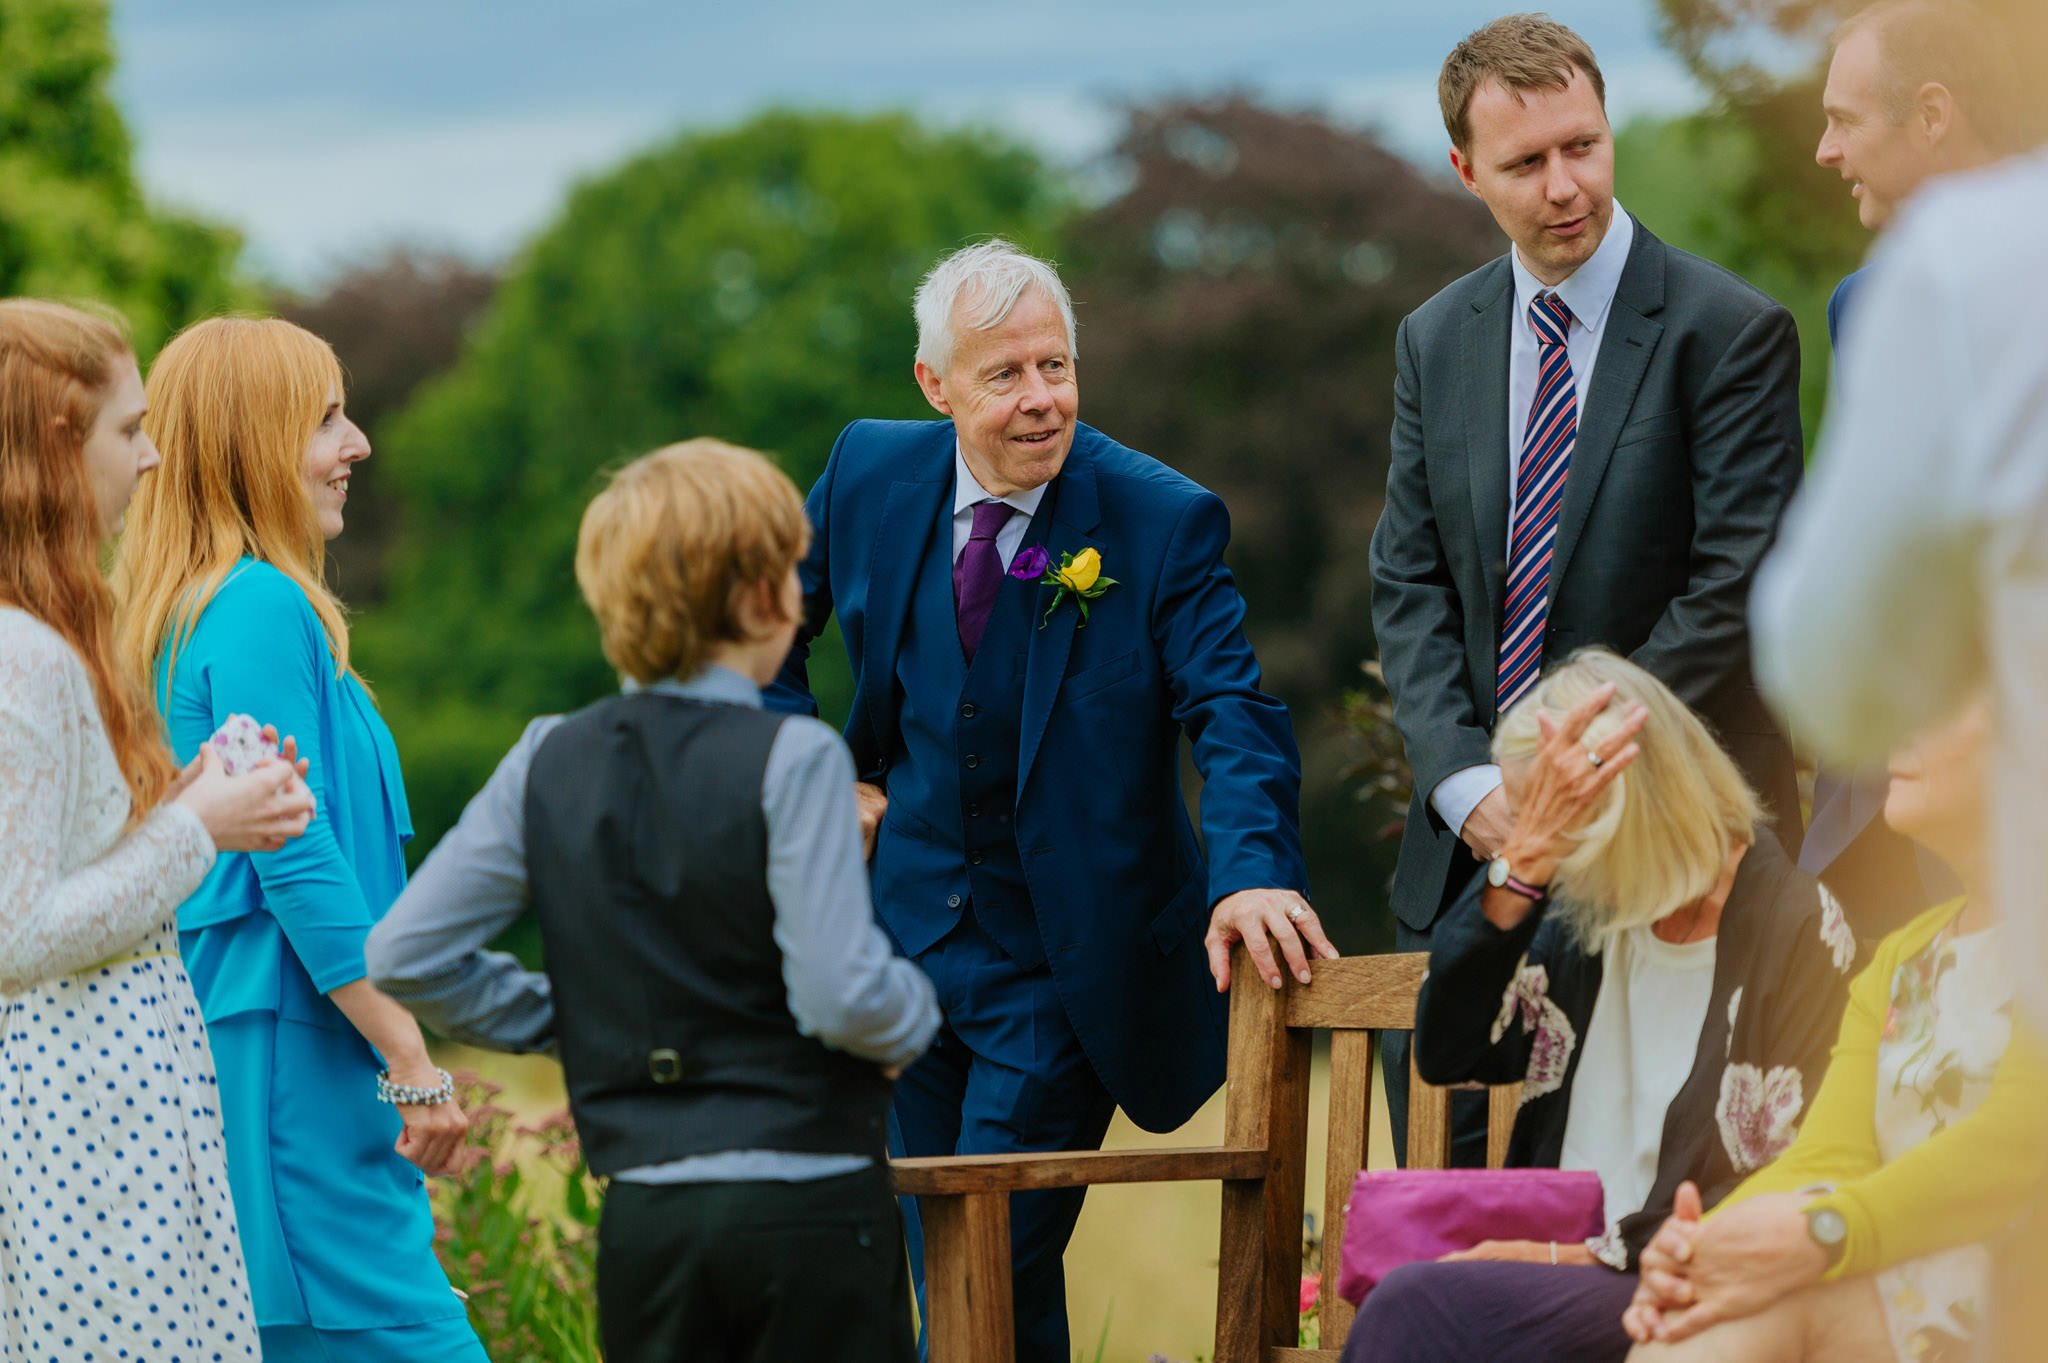 Wedding photography at Homme House in Herefordshire, West Midlands 75